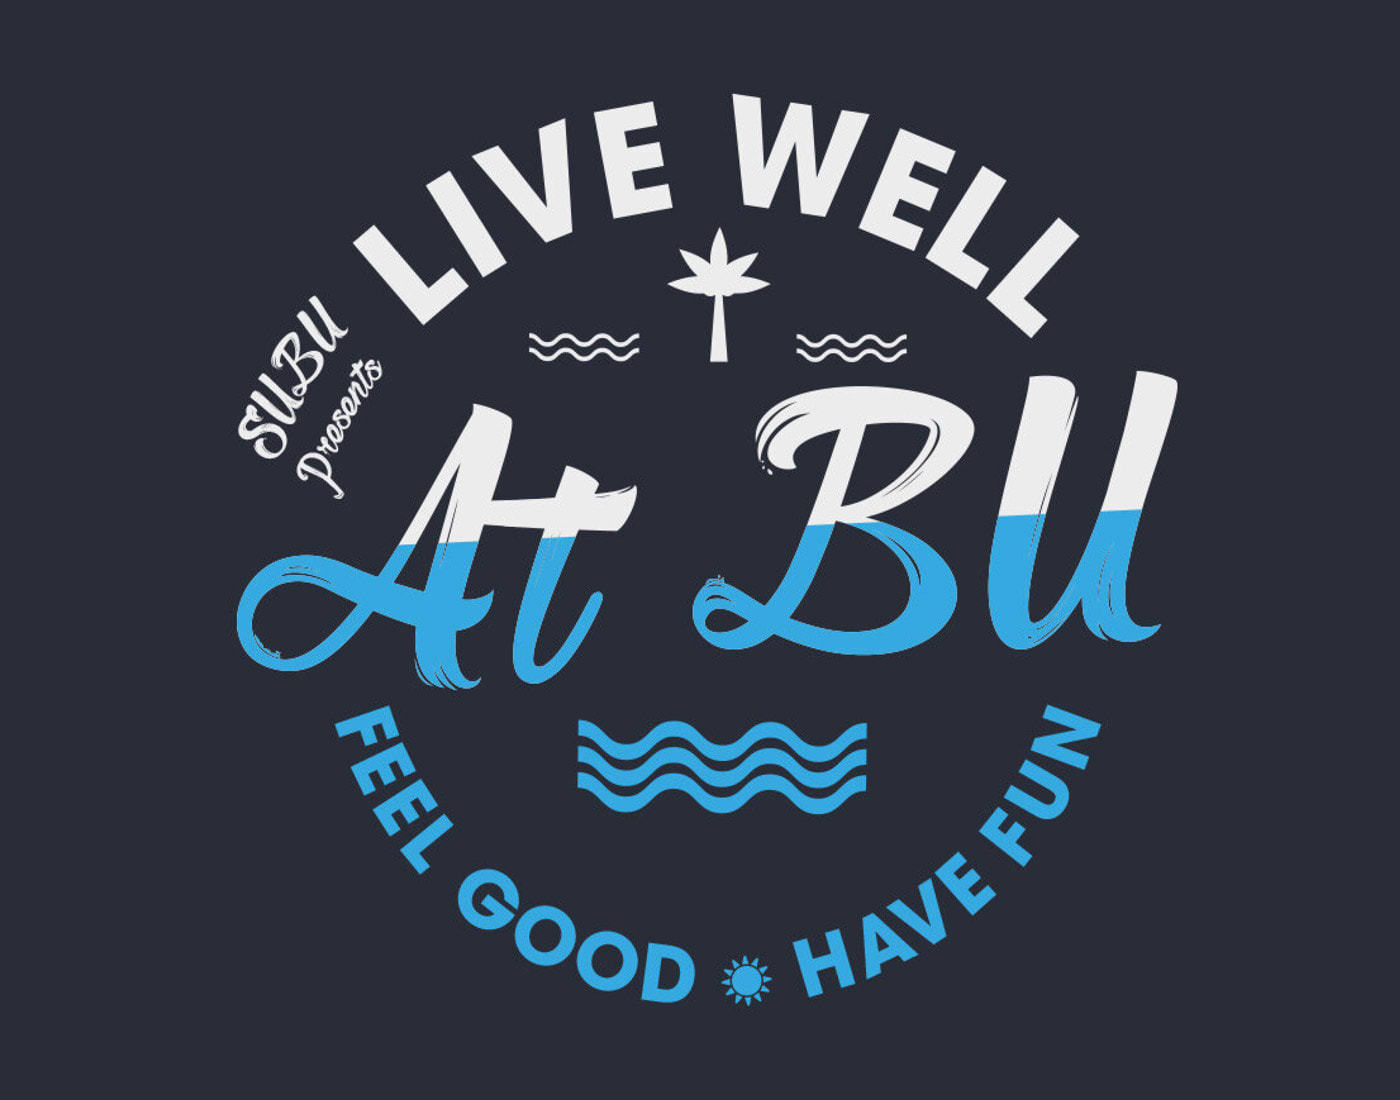 Live Well at BU